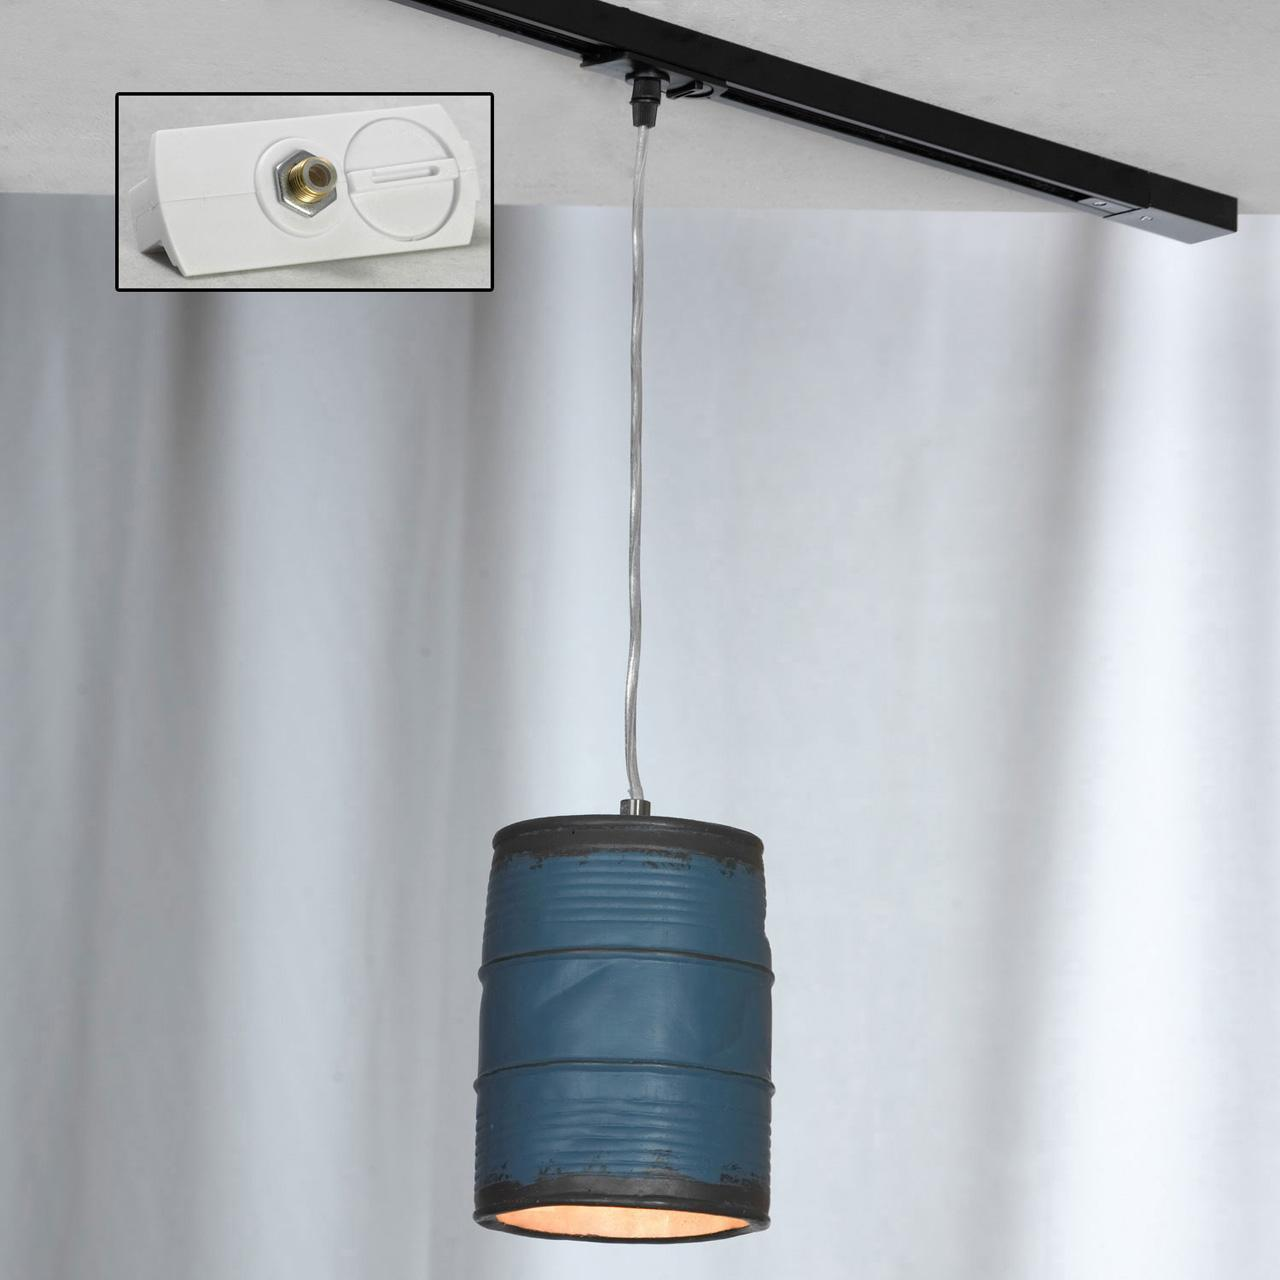 Трековый светильник однофазный Lussole LOFT Track Lights LSP-9525-TAW edison bulb loft style vintage pendant industrial light lamp with 3 lights for dining room